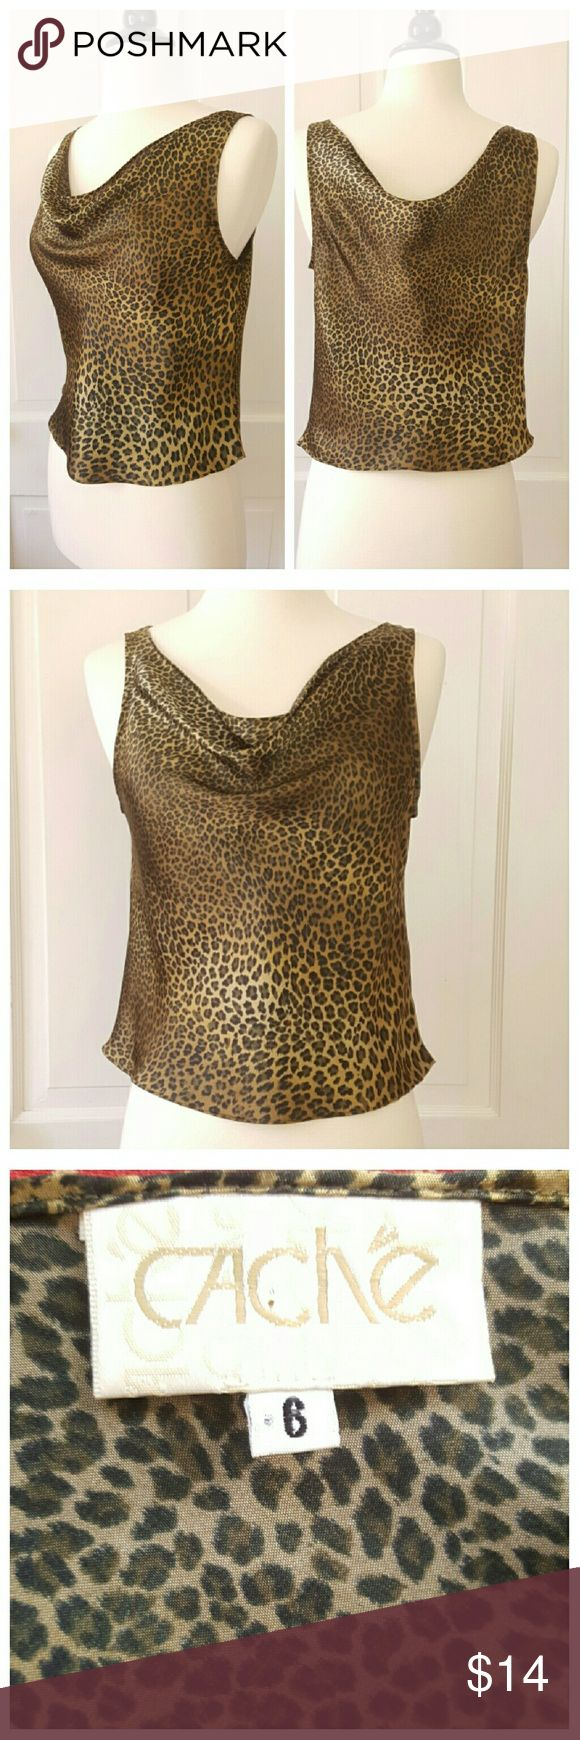 SALE today only Cache Leopard Print Top SALE today only Cache leopard print satin top with drape neckline. Cache Tops Tank Tops